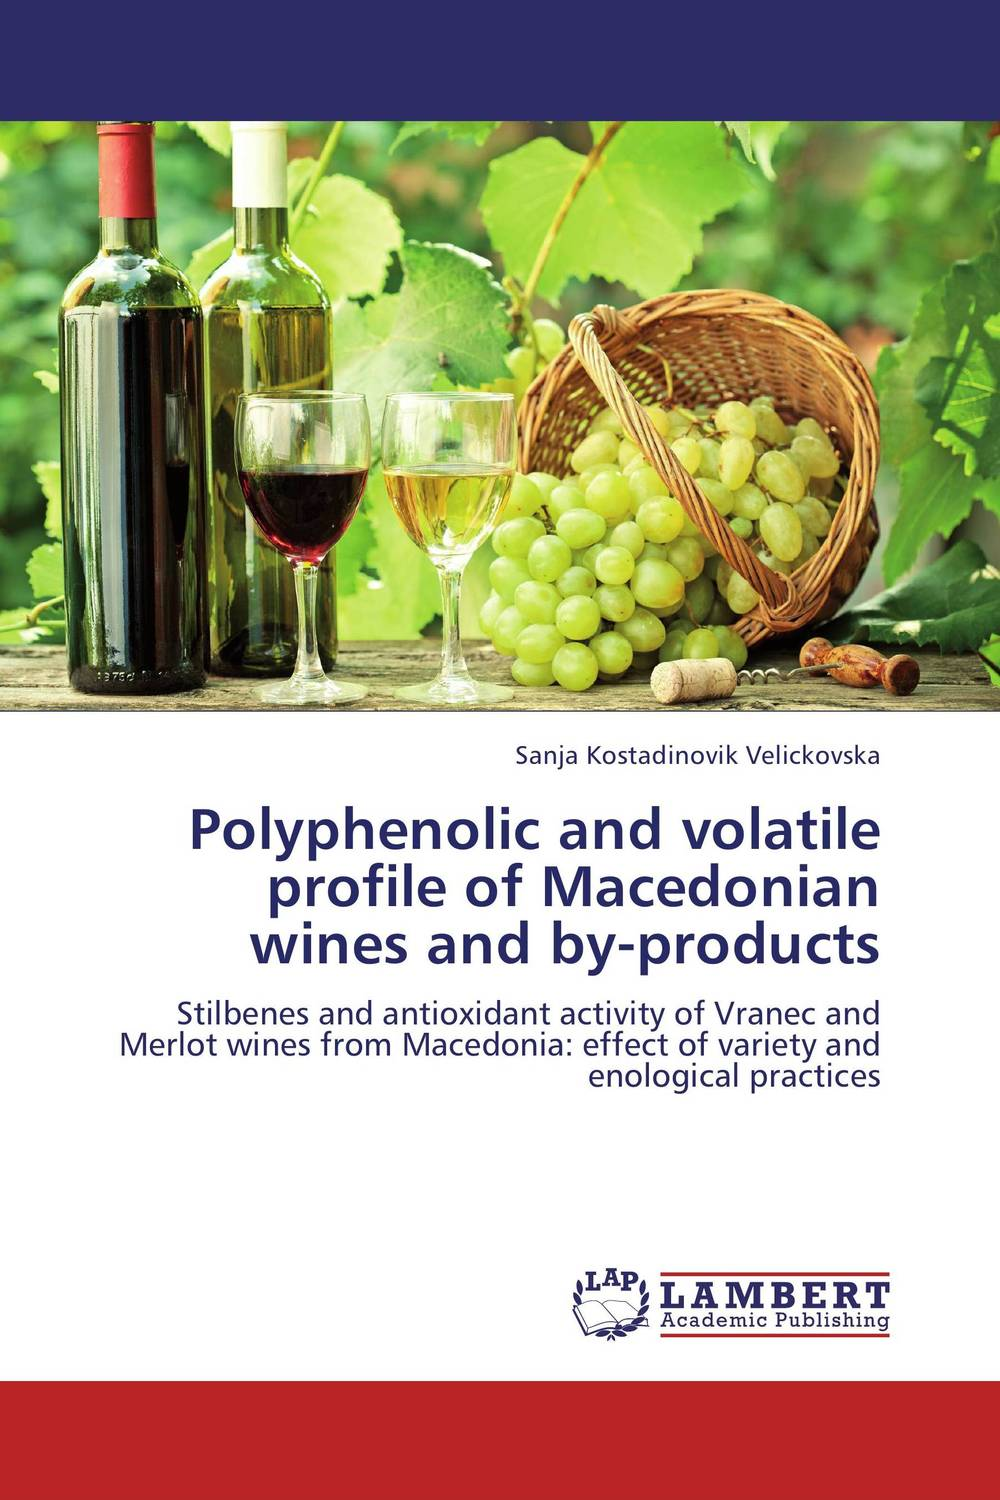 Polyphenolic and volatile profile of Macedonian wines and by-products using enzyme from novozyme